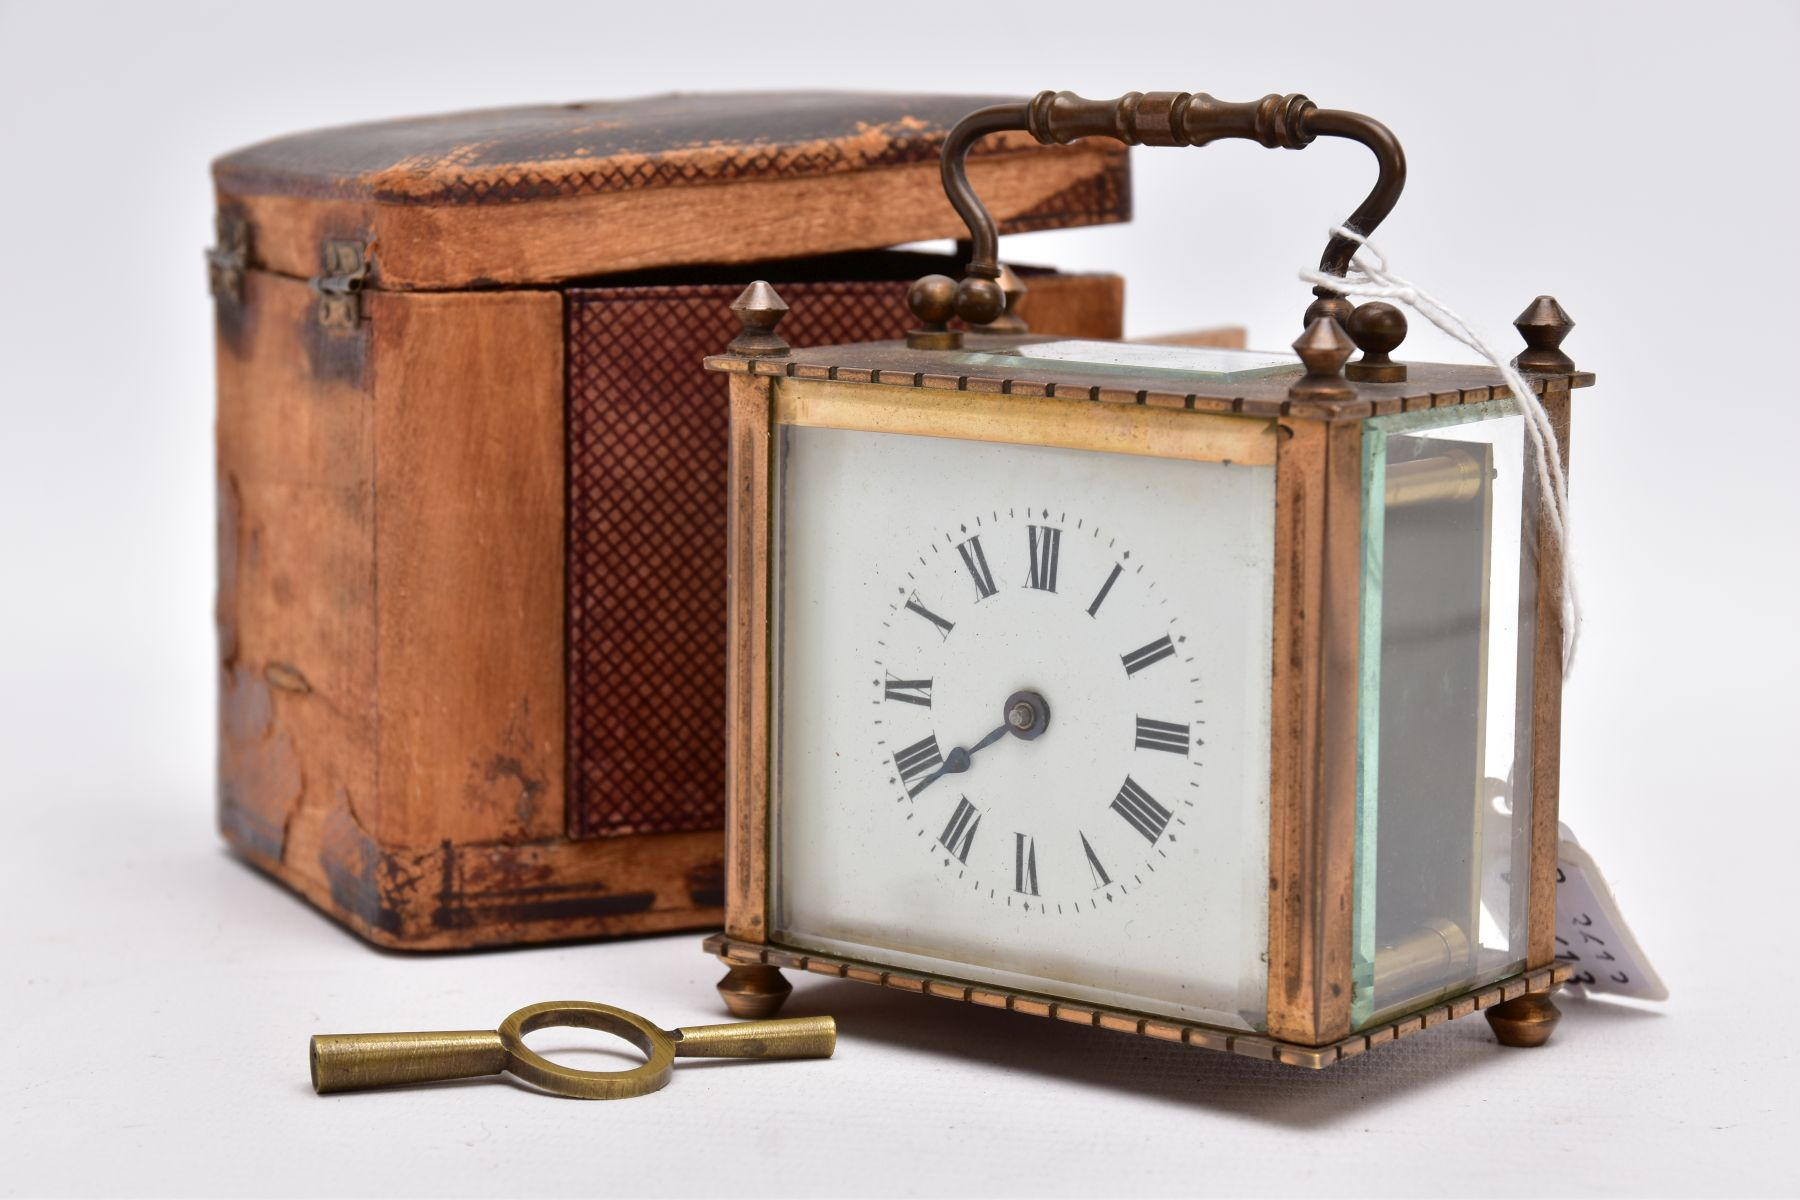 A SMALL LEATHER CASED BRASS TRAVEL CARRIAGE CLOCK, glass panels, white dial with roman numerals, - Image 5 of 8